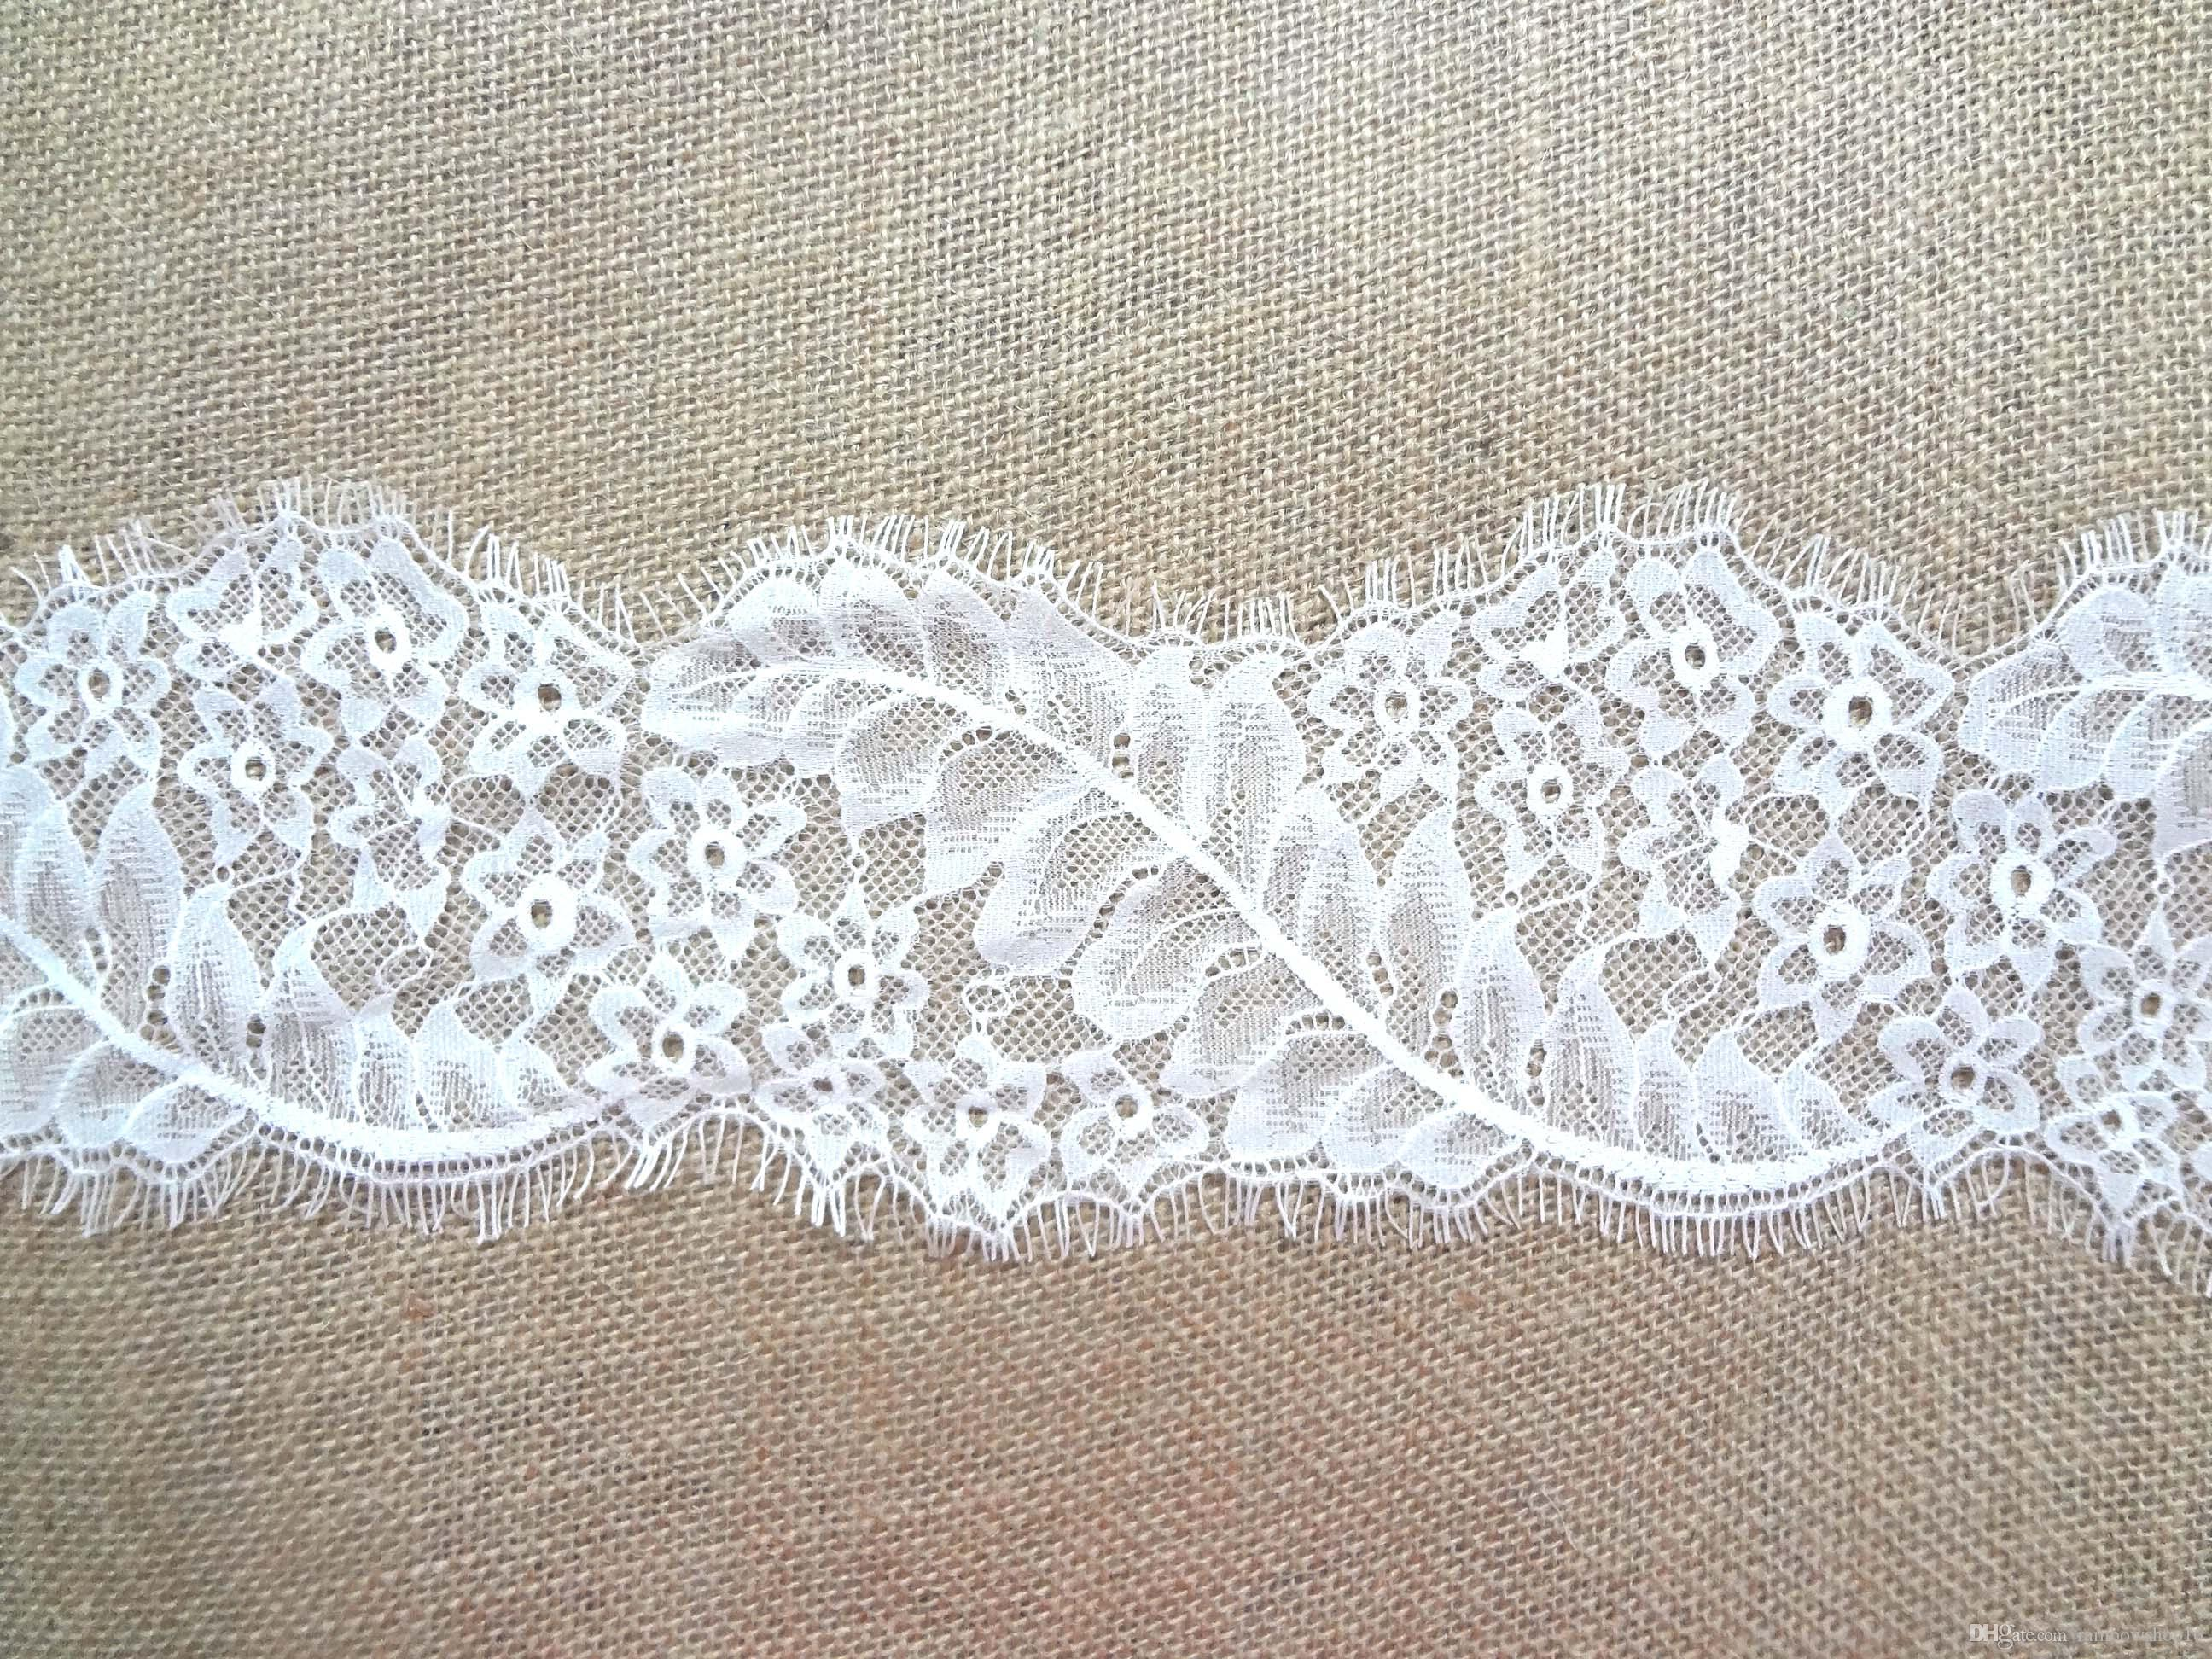 Lace Fabric Trims Jacquard Polyester Guipure Home Textiles Decor Ribbon Sewing Party DIY Clothing Apparel Accessories Floral WHITE 11*300cm